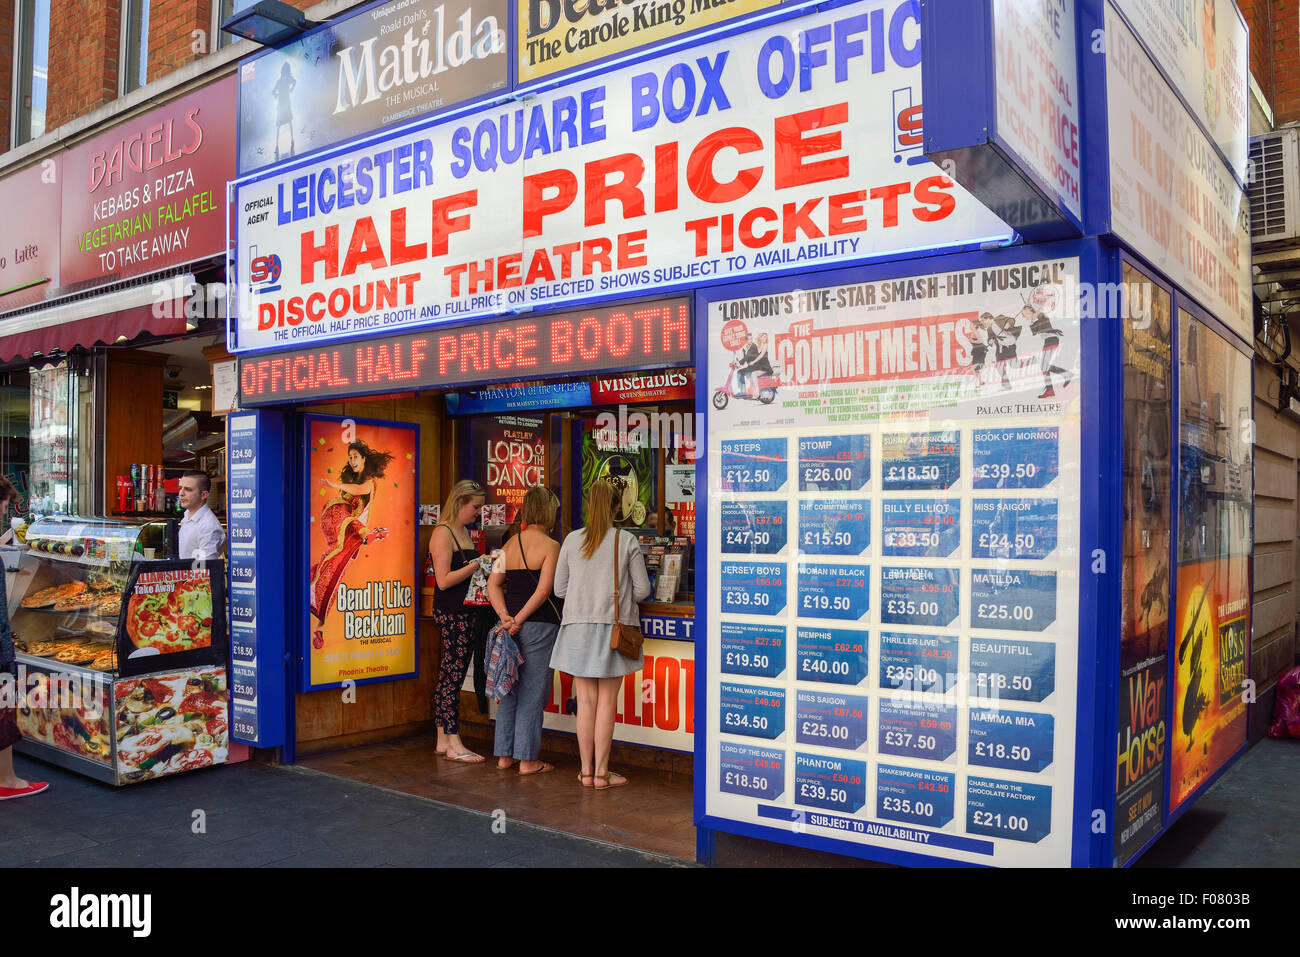 Leicester Square Ticket Booth, Leicester Square, West End, City of Westminster, London, England, United Kingdom - Stock Image